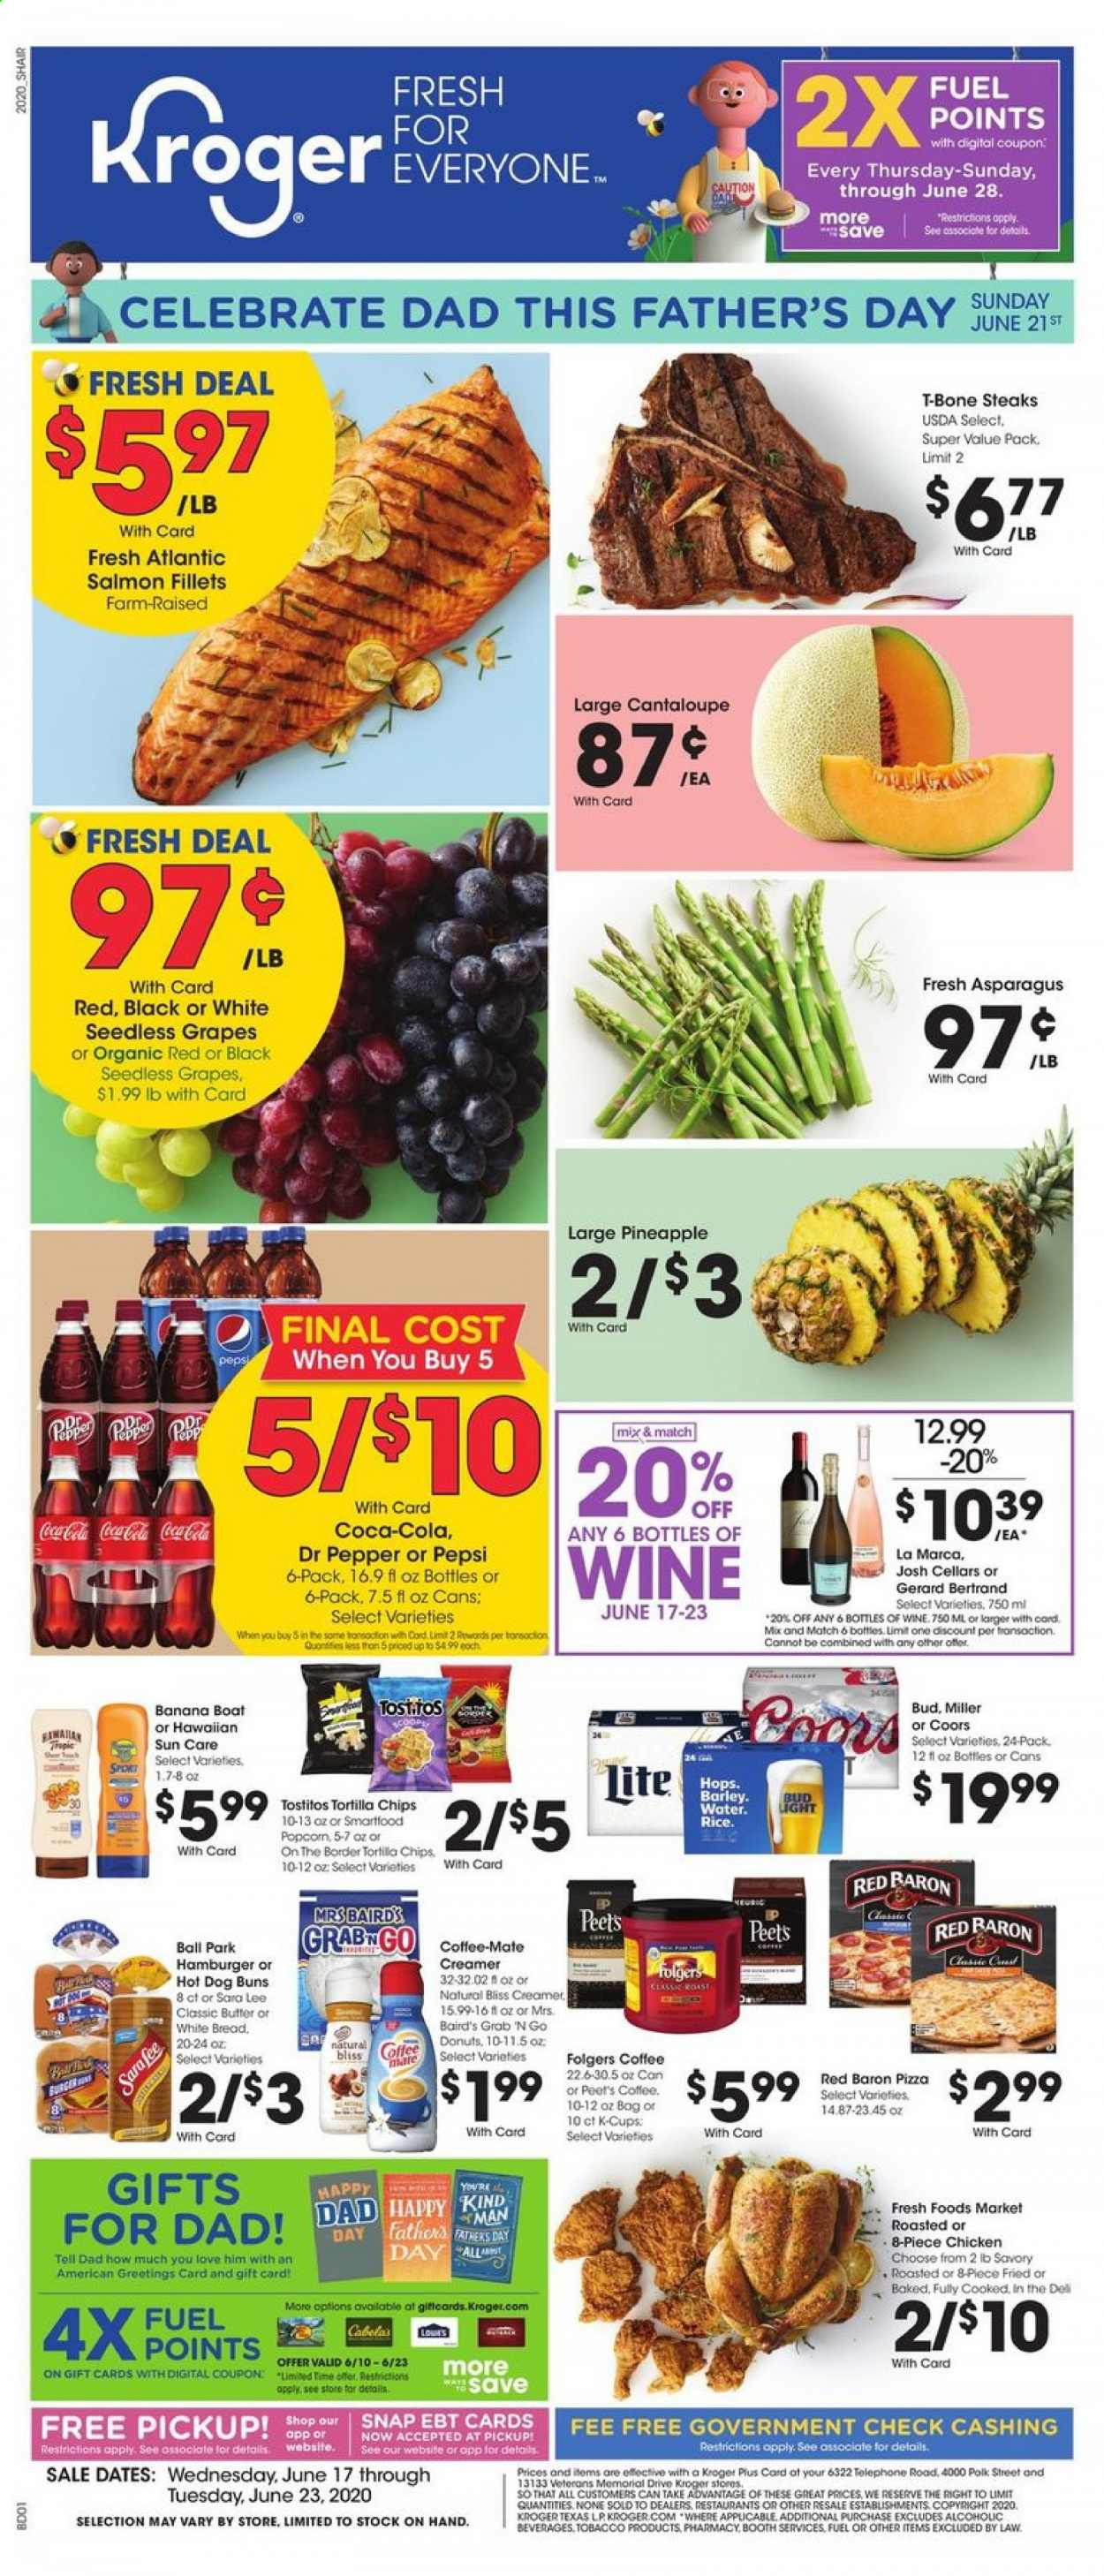 Kroger Flyer - 06.17.2020 - 06.23.2020 - Sales products - Bud Light, Coors, asparagus, cantaloupe, grapes, seedless grapes, pineapple, bread, white bread, donut, salmon, hot dog, pizza, Coffee-Mate, butter, creamer, tortilla chips, chips, barley, rice, pepper, Coca-Cola, Pepsi, Dr. Pepper, water, Folgers, wine, chicken, t-bone steak, hamburger, fuel. Page 1.